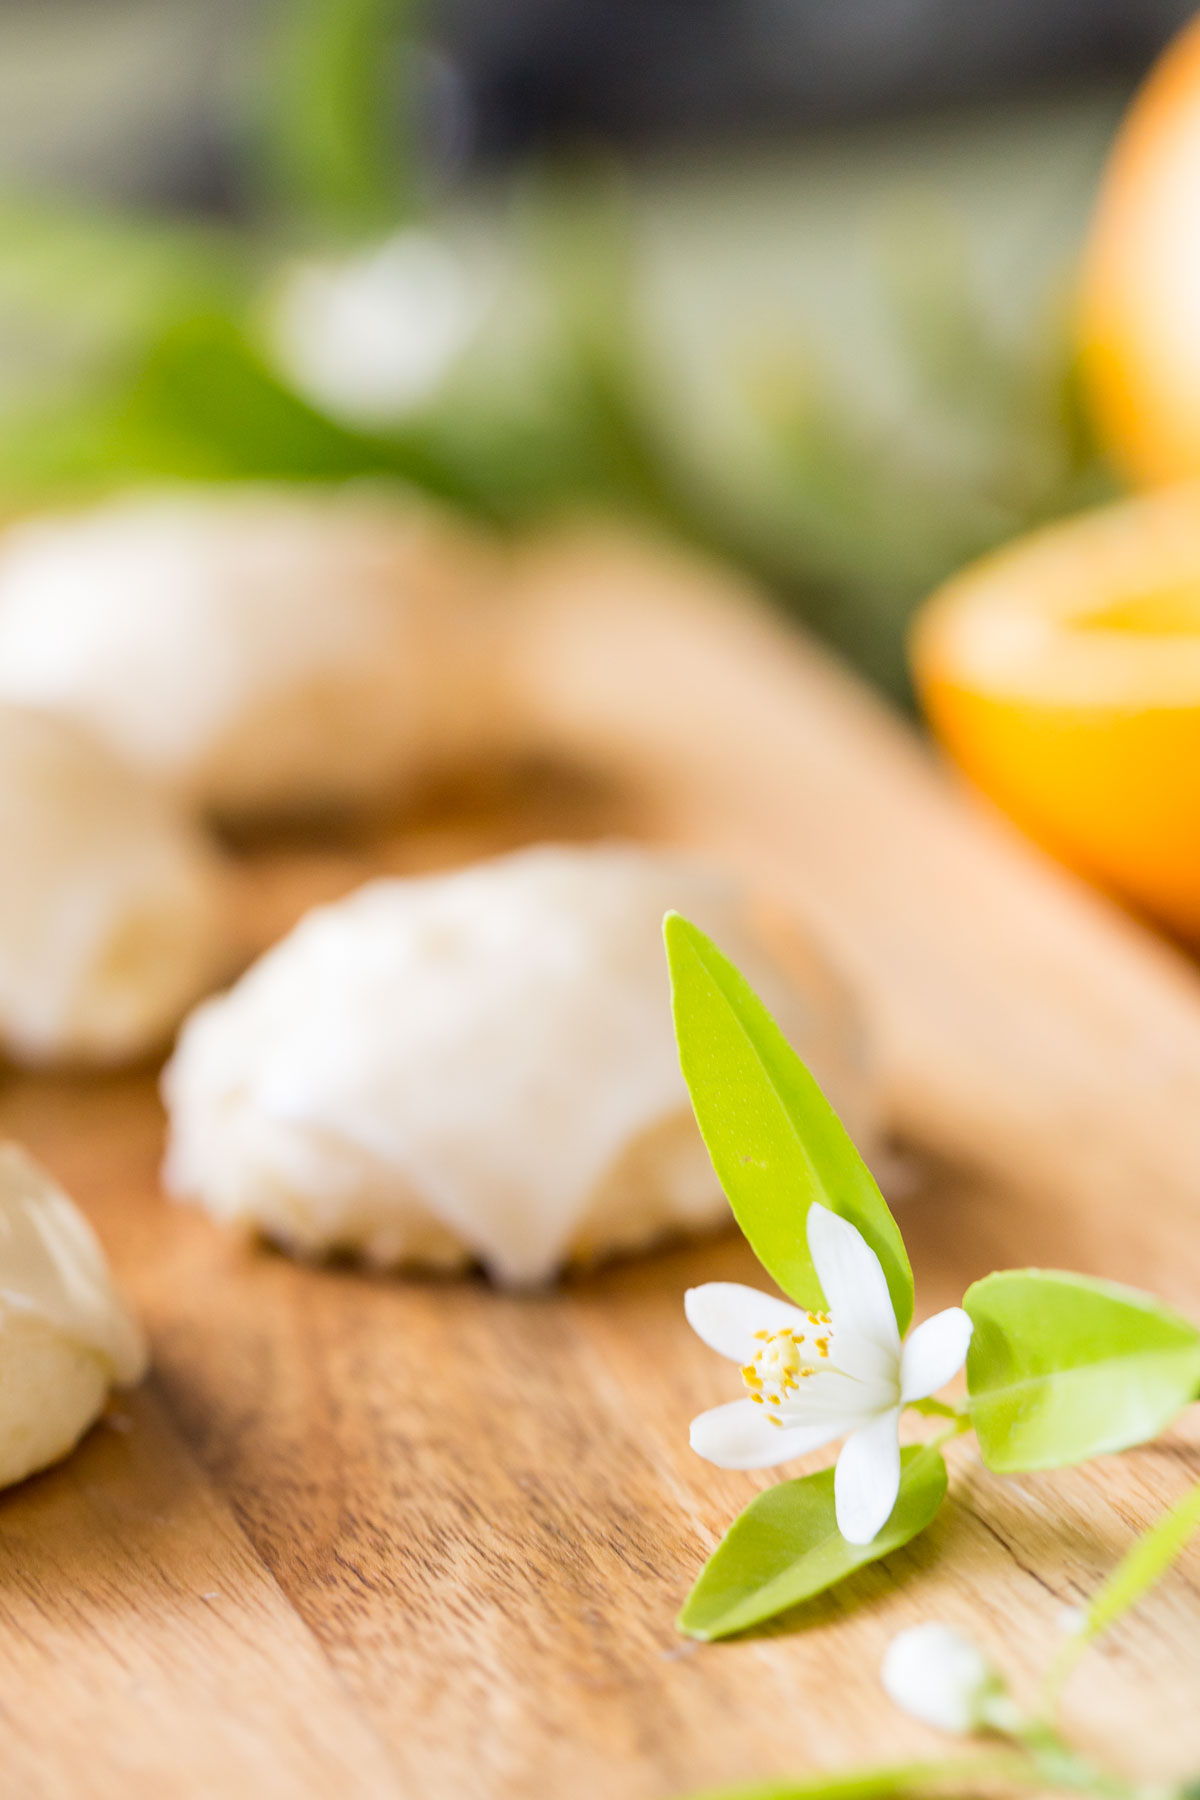 A close up shot of an orange blossom with cookies blurred in the background on a wooden cutting board.